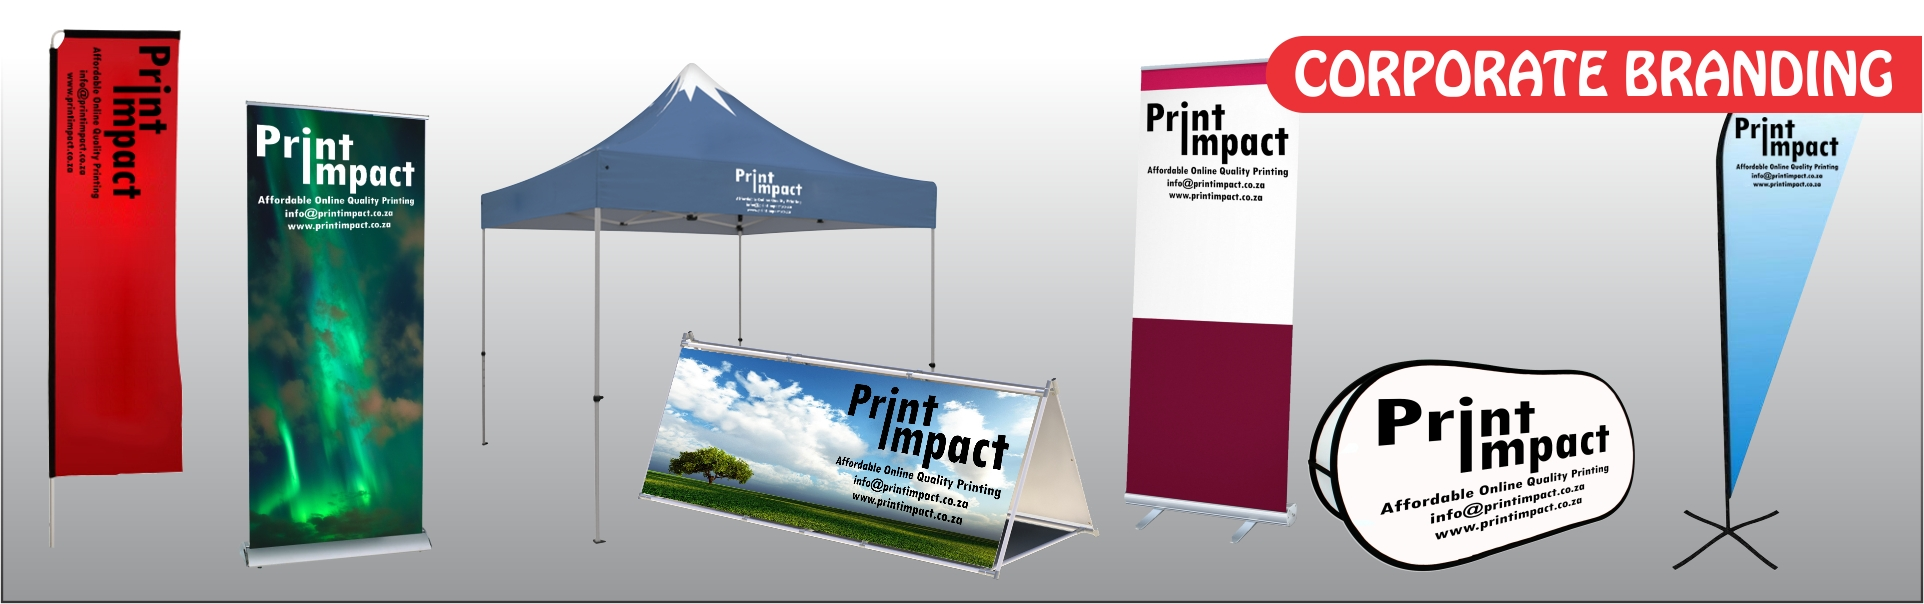 Corporate Branding is our speciality! Custom size Banners, Gazebos and much more